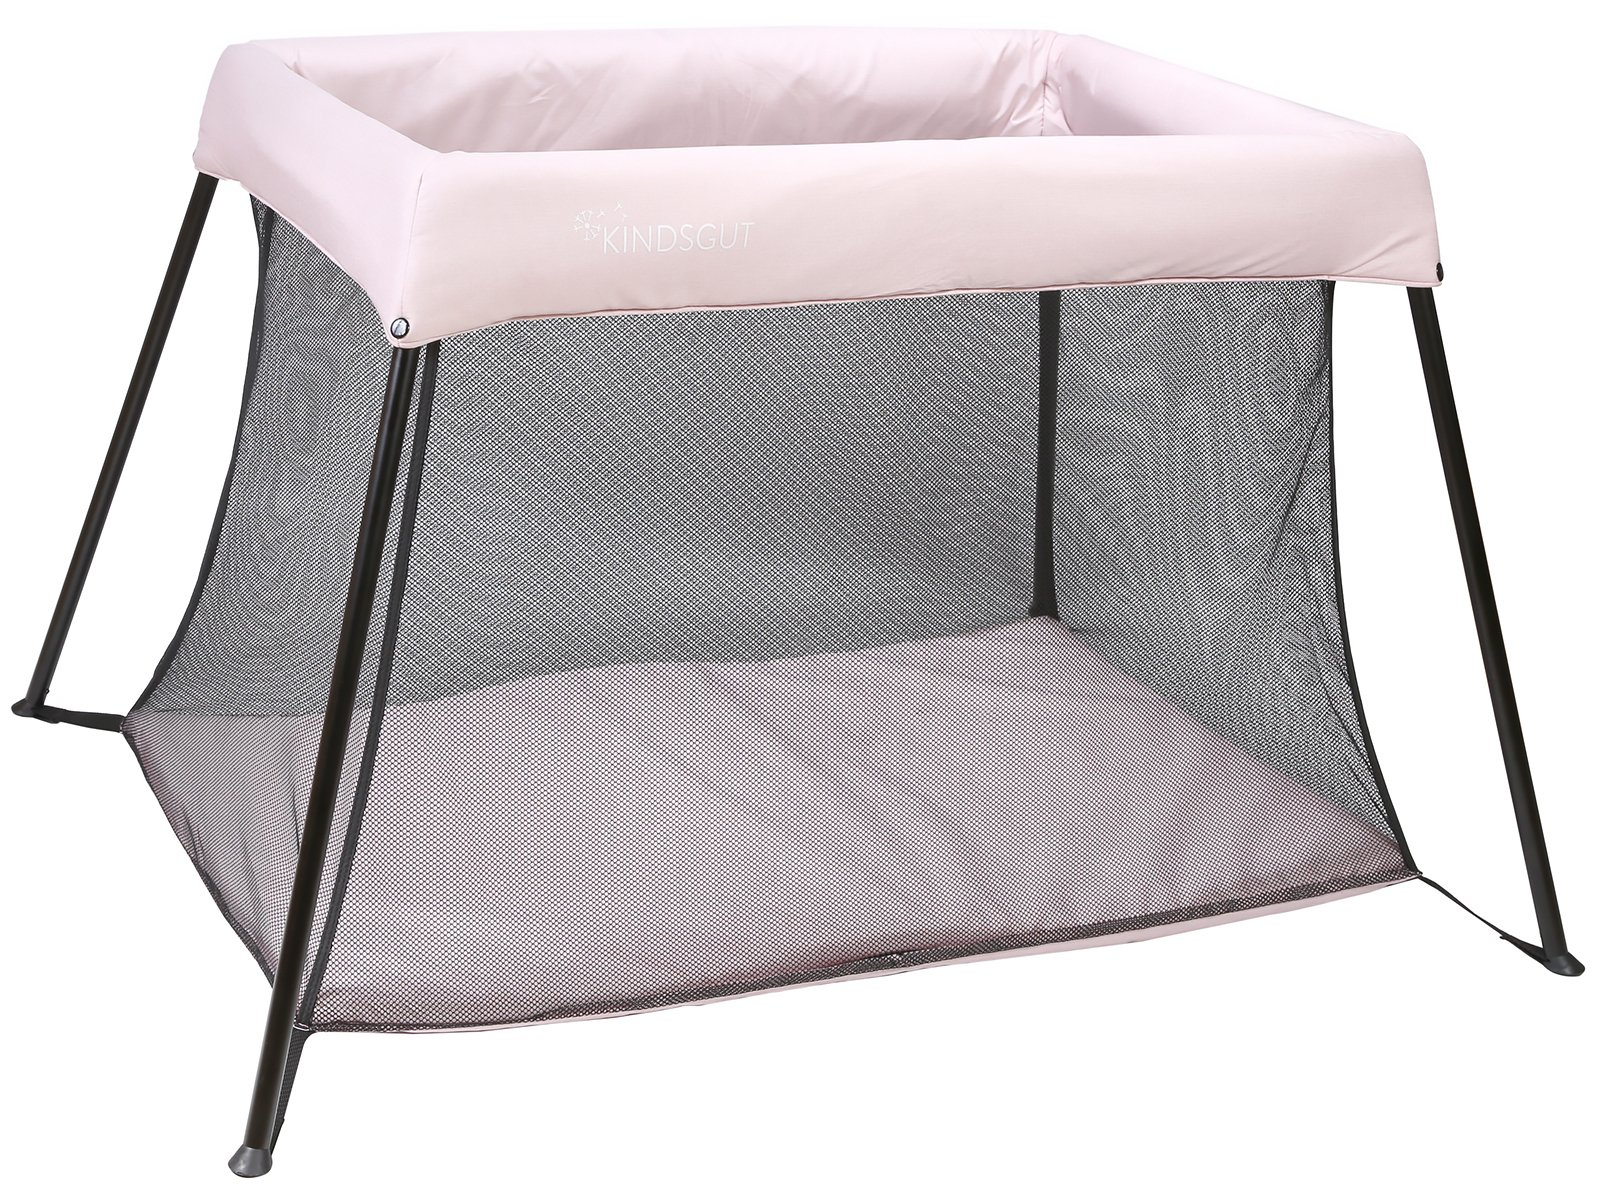 Kindsgut playpen, Stable Travel cot, Delicate Pink Kindsgut Dream area and play paradise for babies, playpen with reclining surface of 100 cm x 58 cm Baby playpen made of eco-friendly materials, free of harmful substances and child appropriate with special design Different colors for boys and girls 1